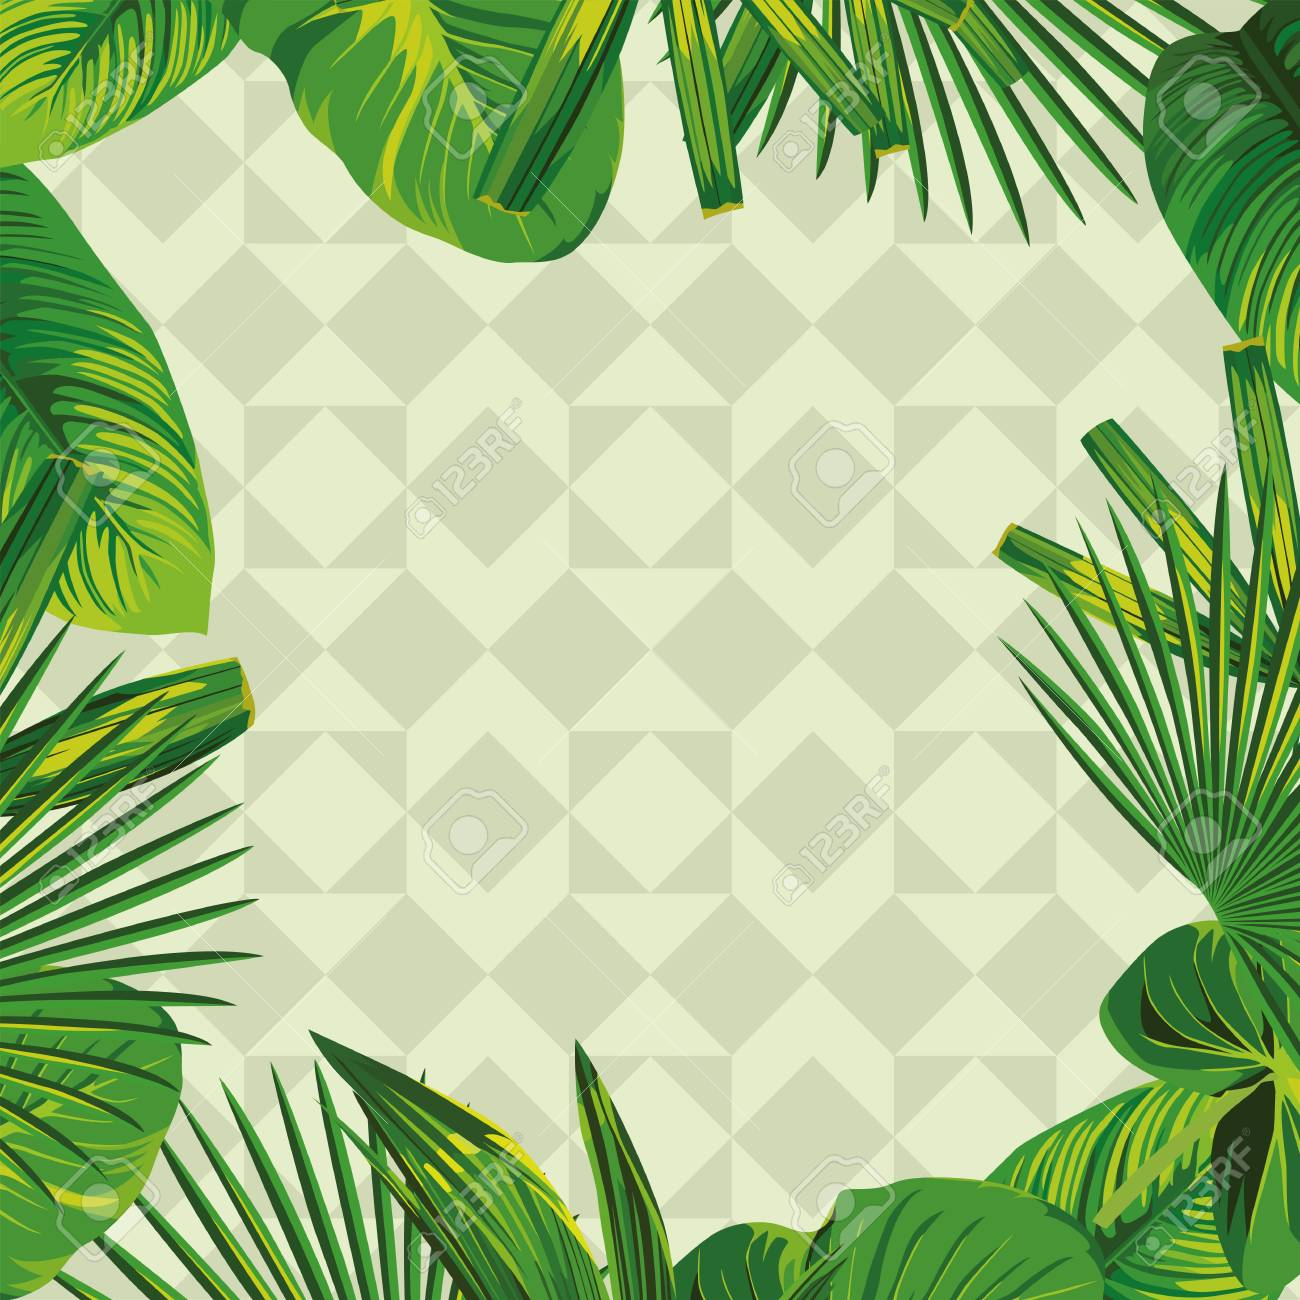 Frame Of Tropical Green Leaves In Olive Geometric Background Royalty Free Cliparts Vectors And Stock Illustration Image 69354536 Large leaf plants not only turn heads and make statements, but they are also the perfect way to create the feeling of having nature close by. frame of tropical green leaves in olive geometric background